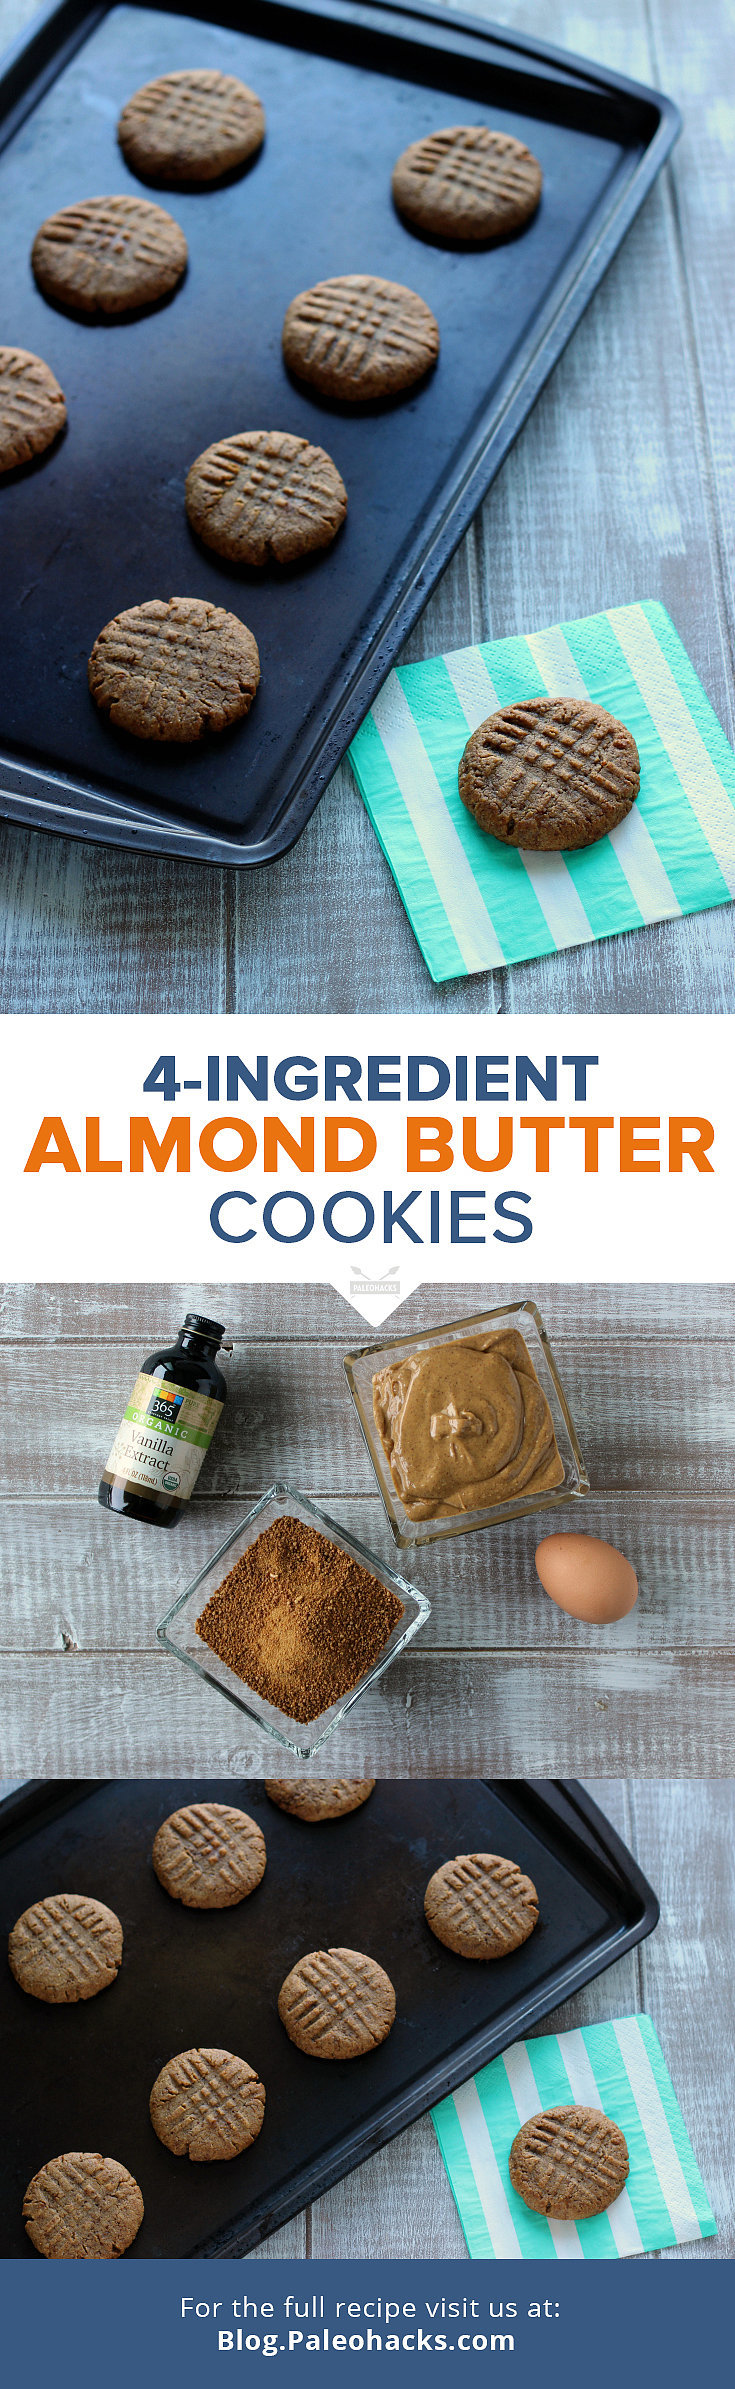 Feed Your Cookie Cravings Without a Gram of Guilt